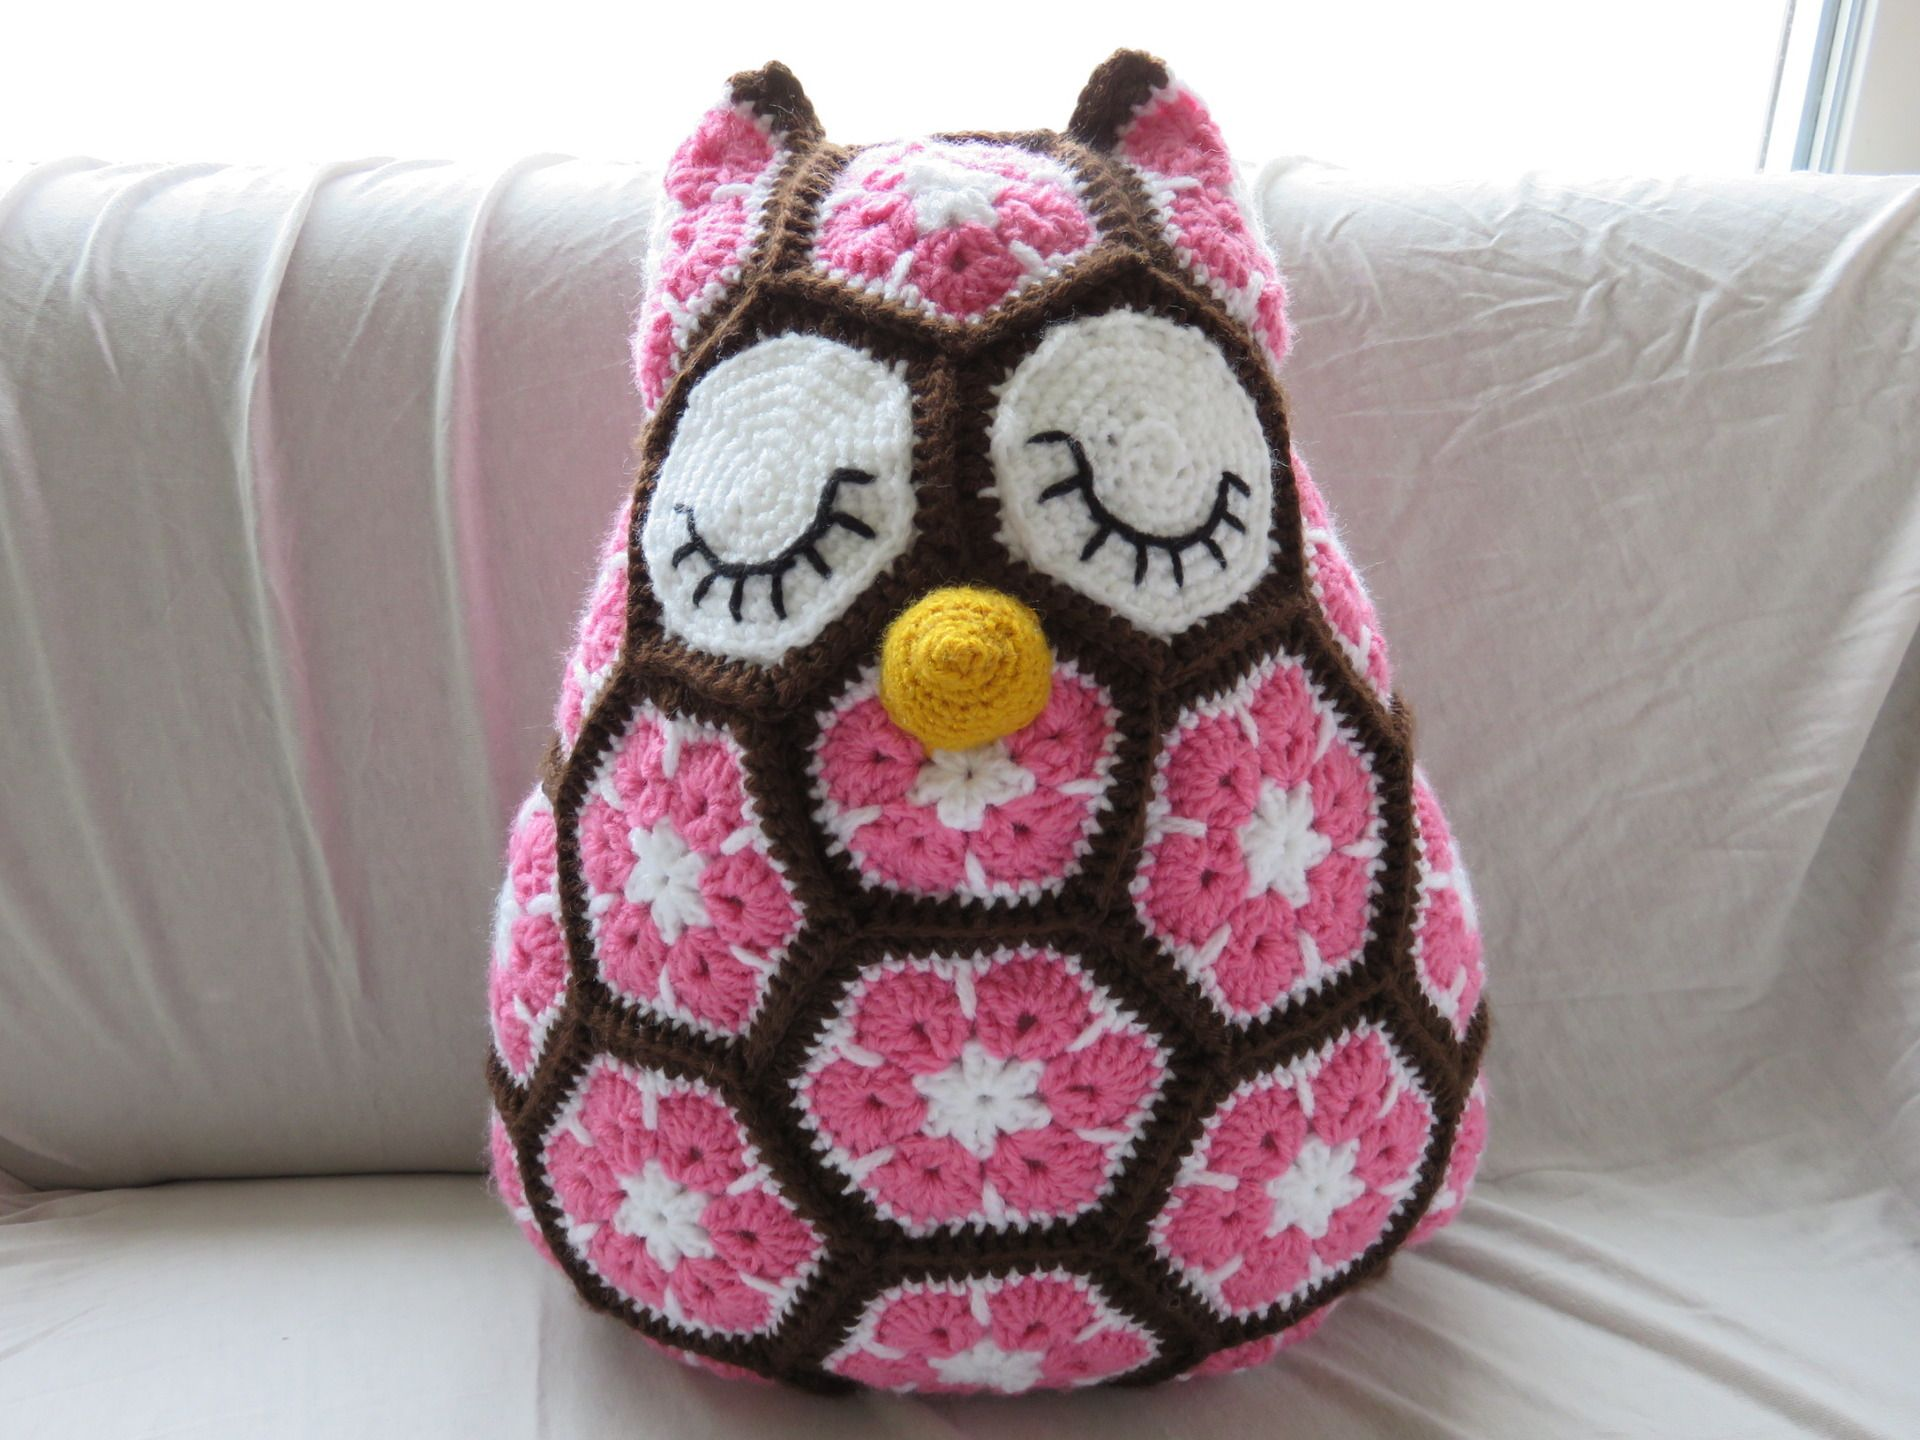 doudou coussin hibou chouette fait main au crochet jeux. Black Bedroom Furniture Sets. Home Design Ideas